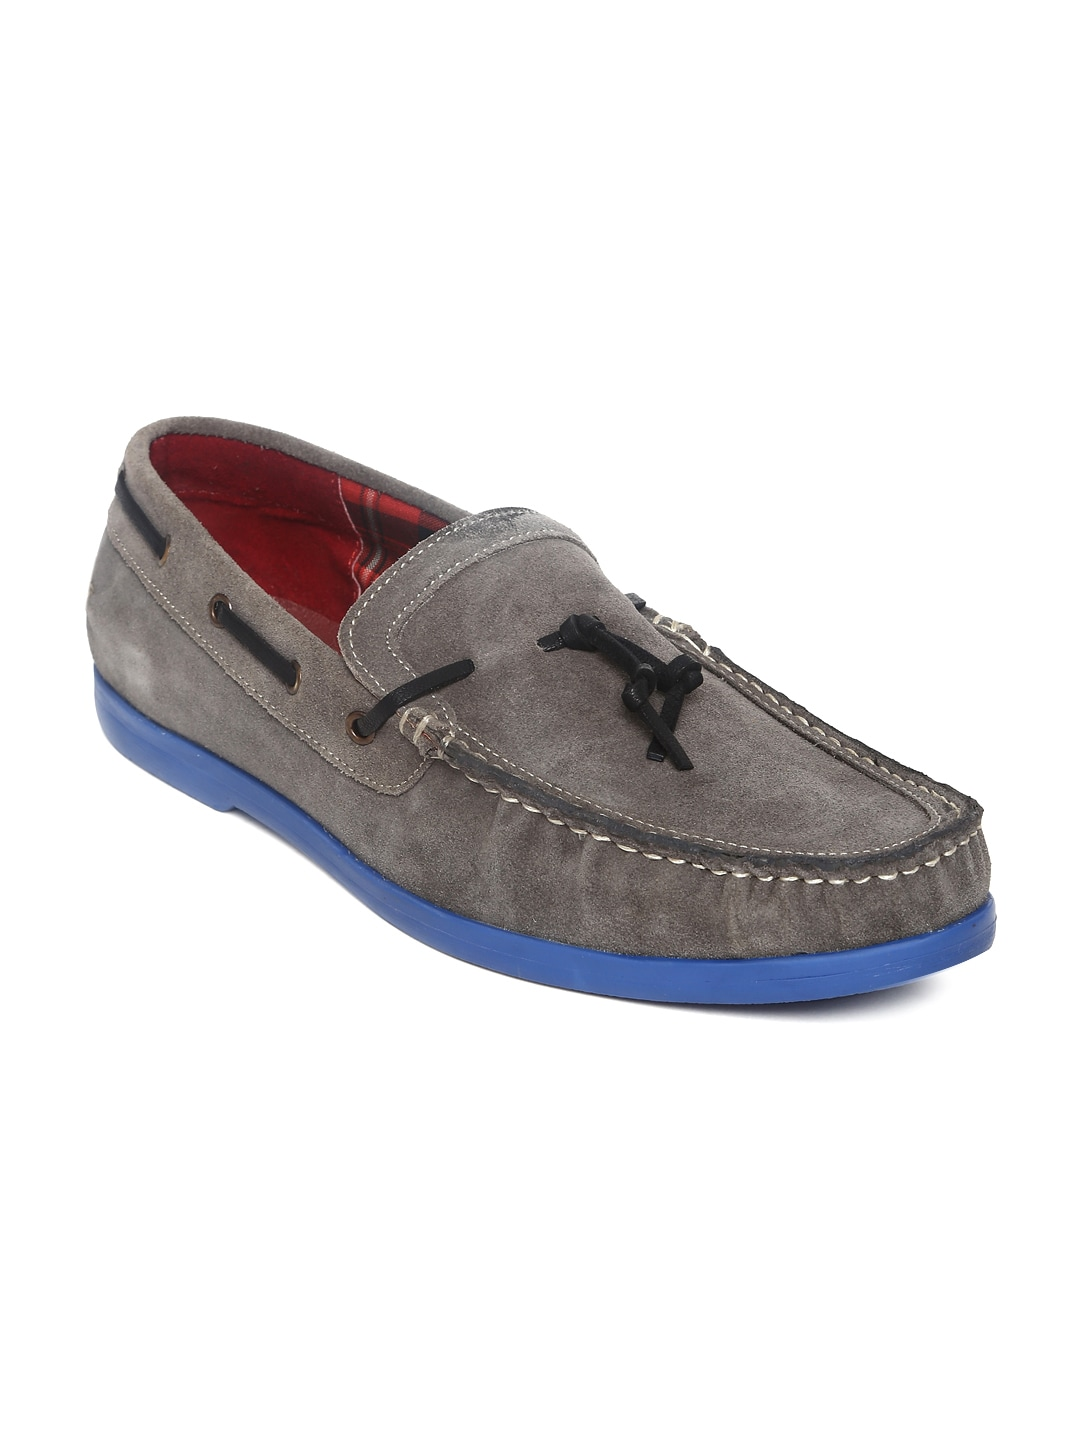 Famozi Famozi Men Grey Suede Boat Shoes